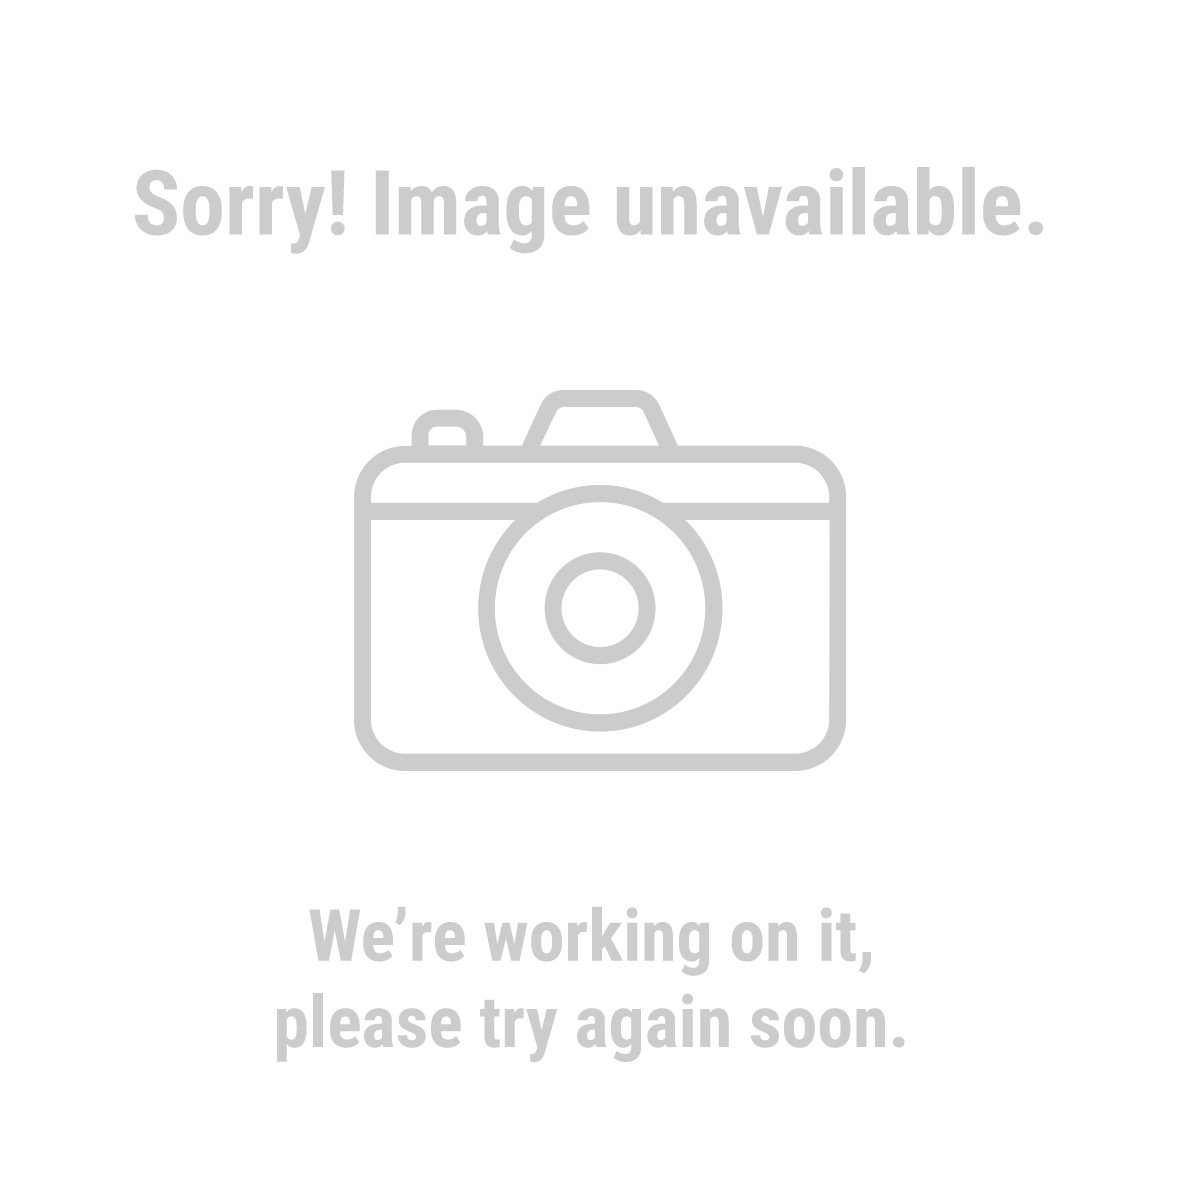 Voyager 38124 Canvas Riggers Bag